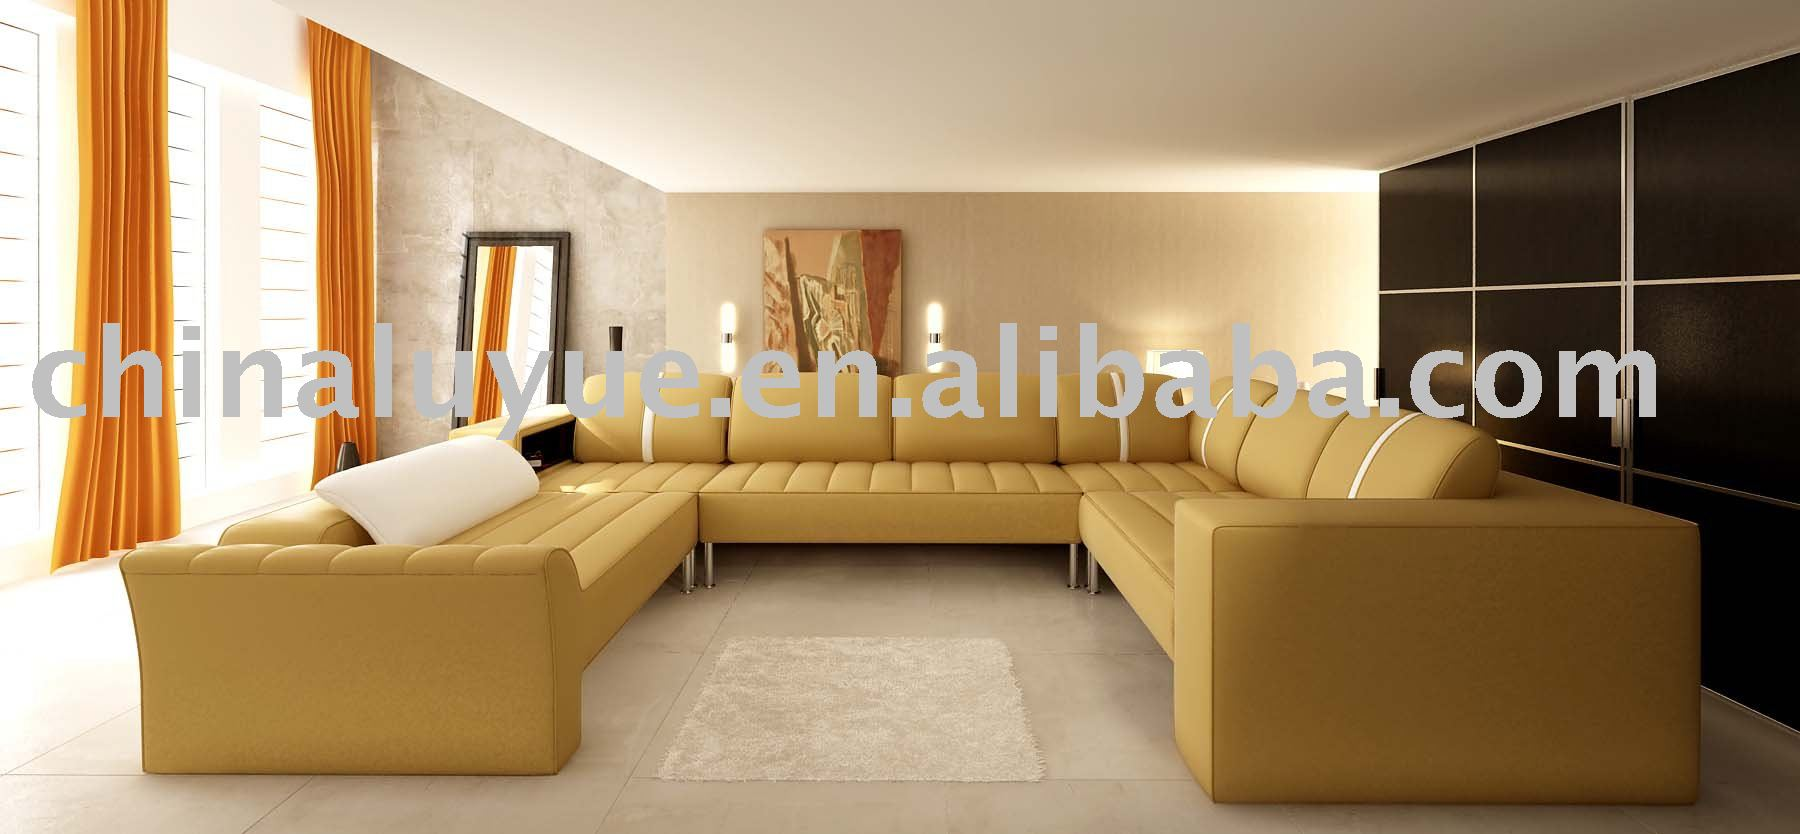 big sofa awesome with big sofa simple mock up poster big sofa concrete wall background d. Black Bedroom Furniture Sets. Home Design Ideas